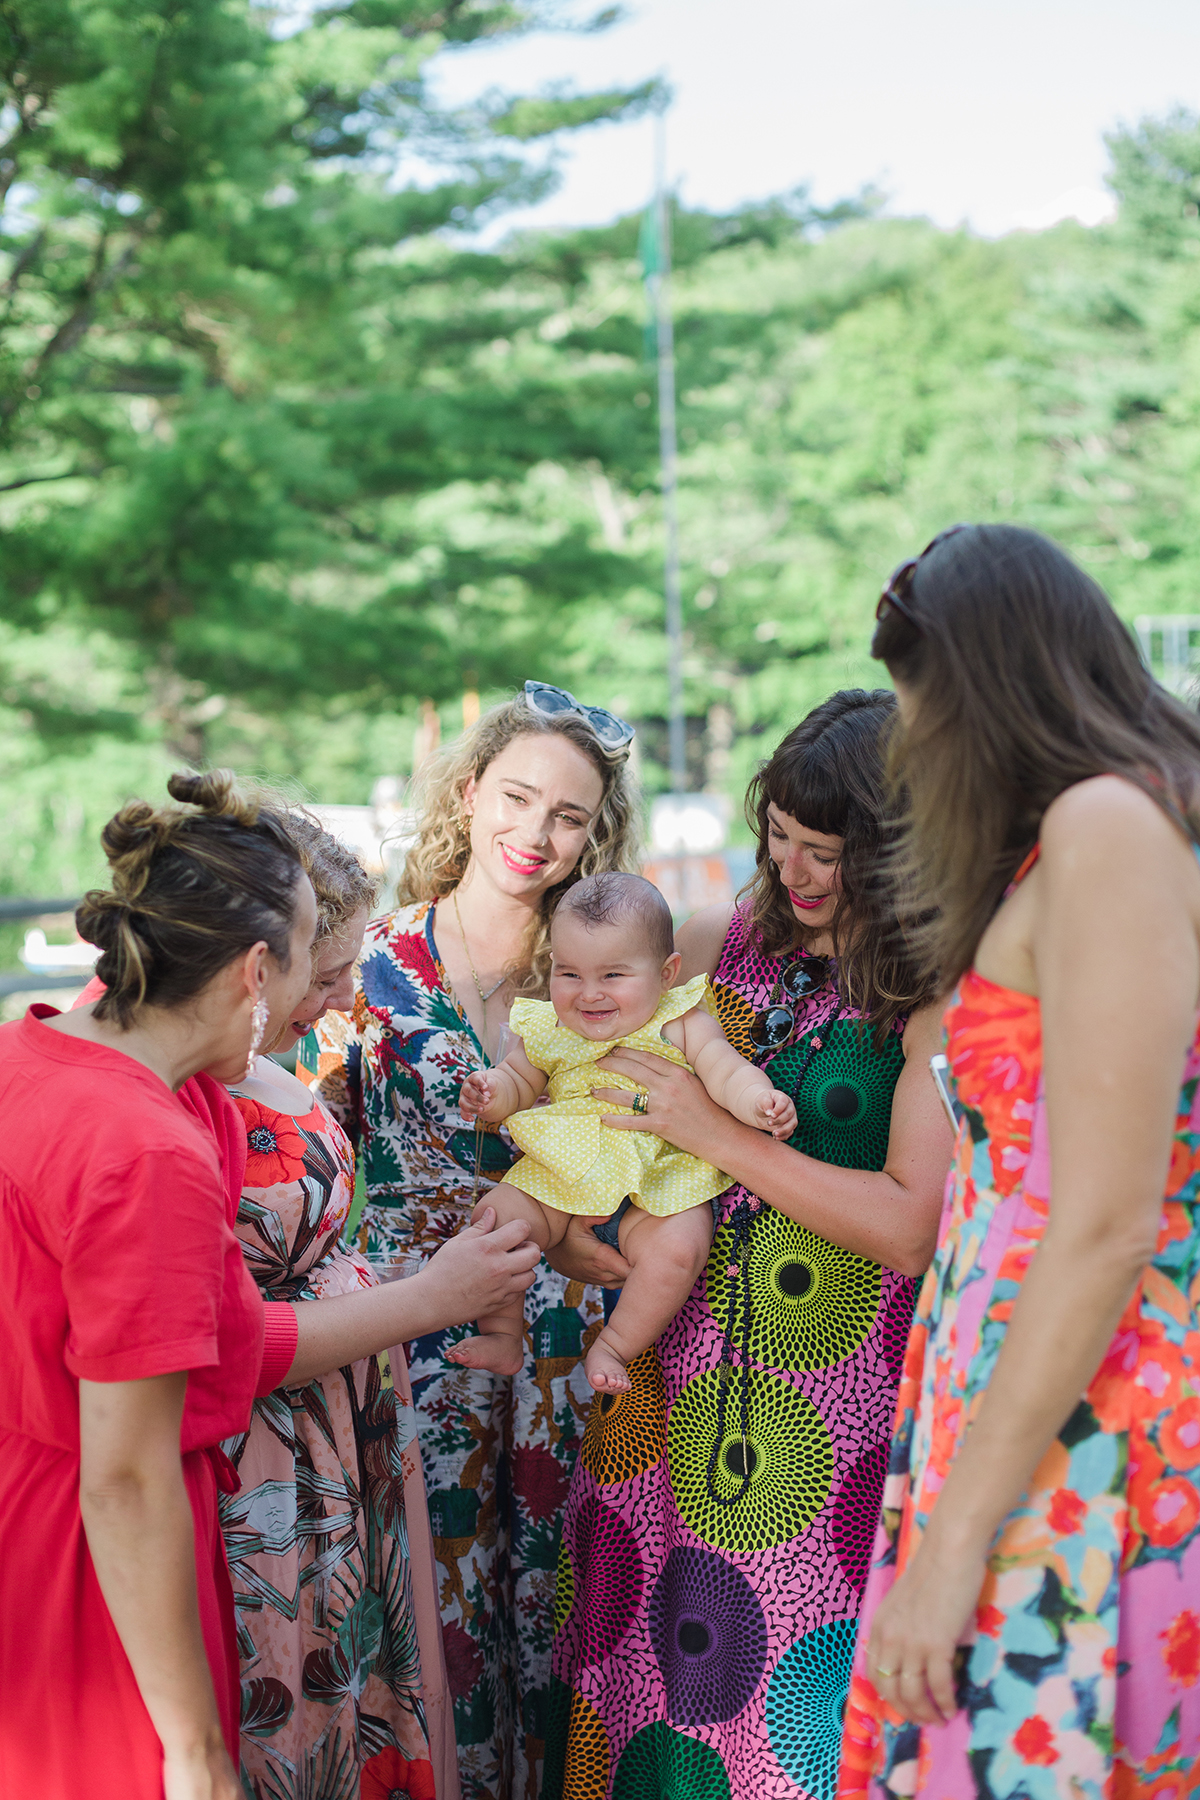 group of smiling women in brightly patterned dresses gather around one holding a baby in a Gina Clyne photo